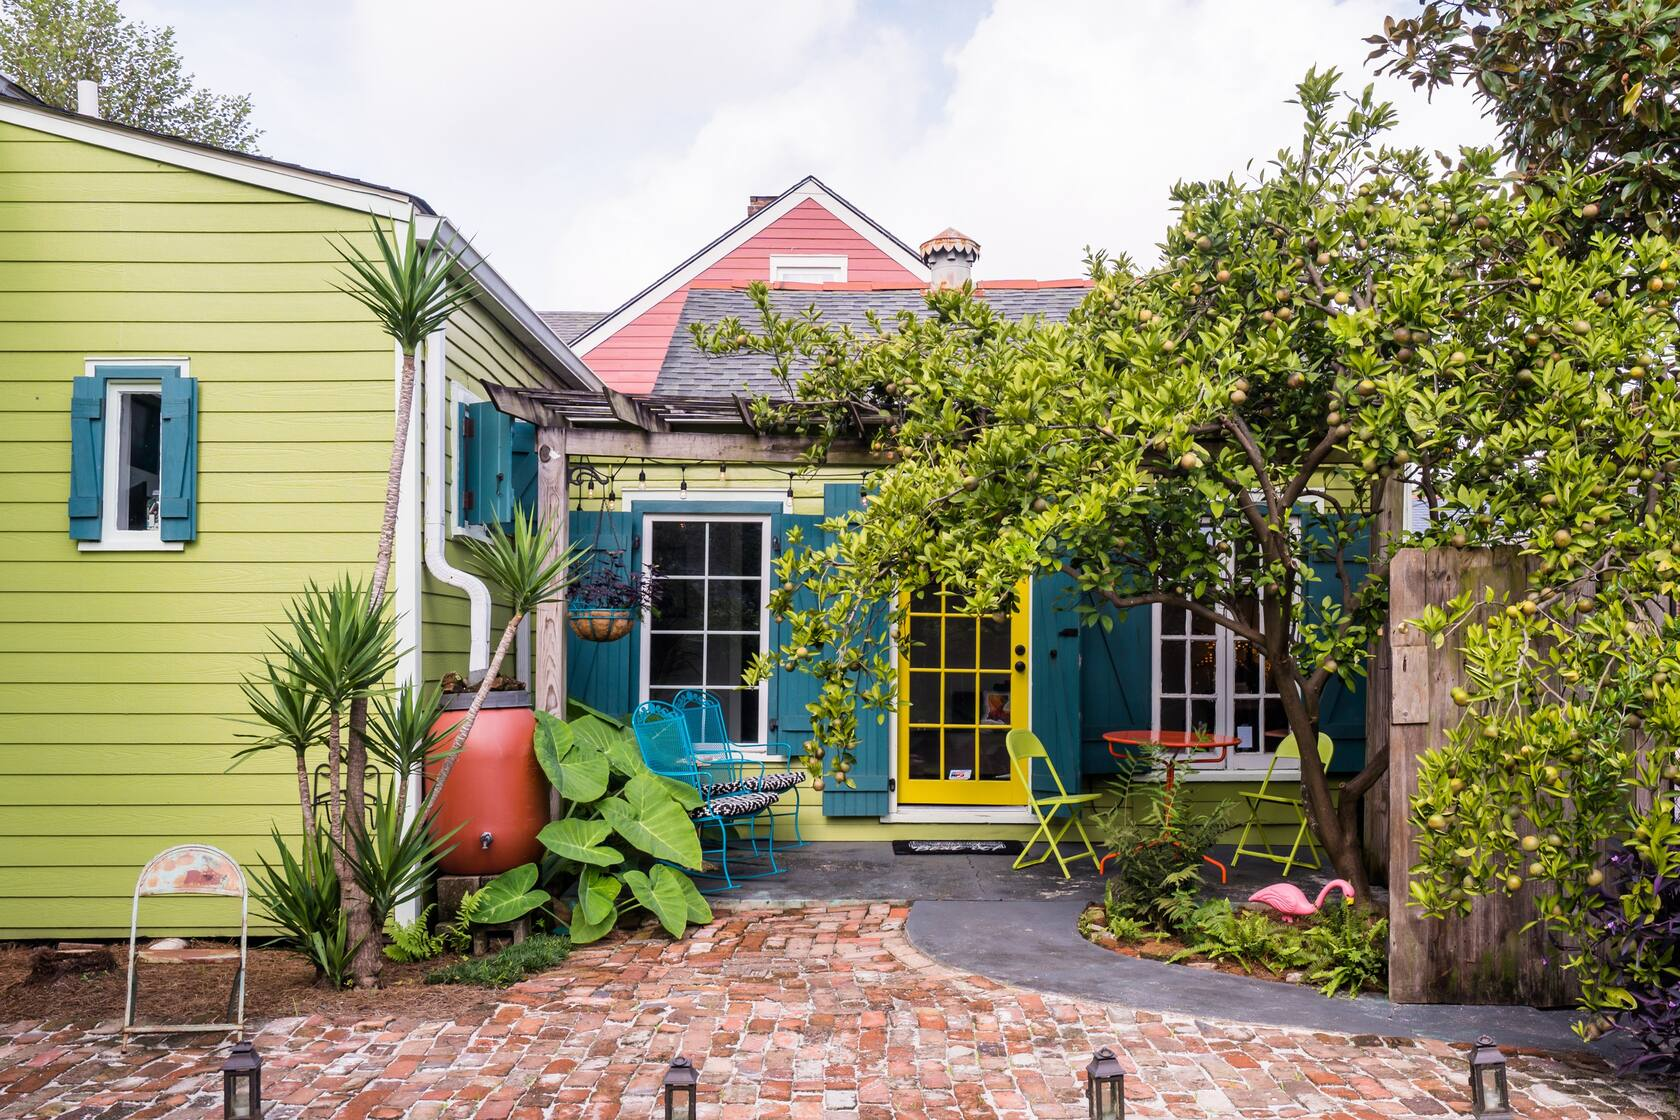 Photo of a colorful Creole Style Cottage Airbnb in New Orleans.